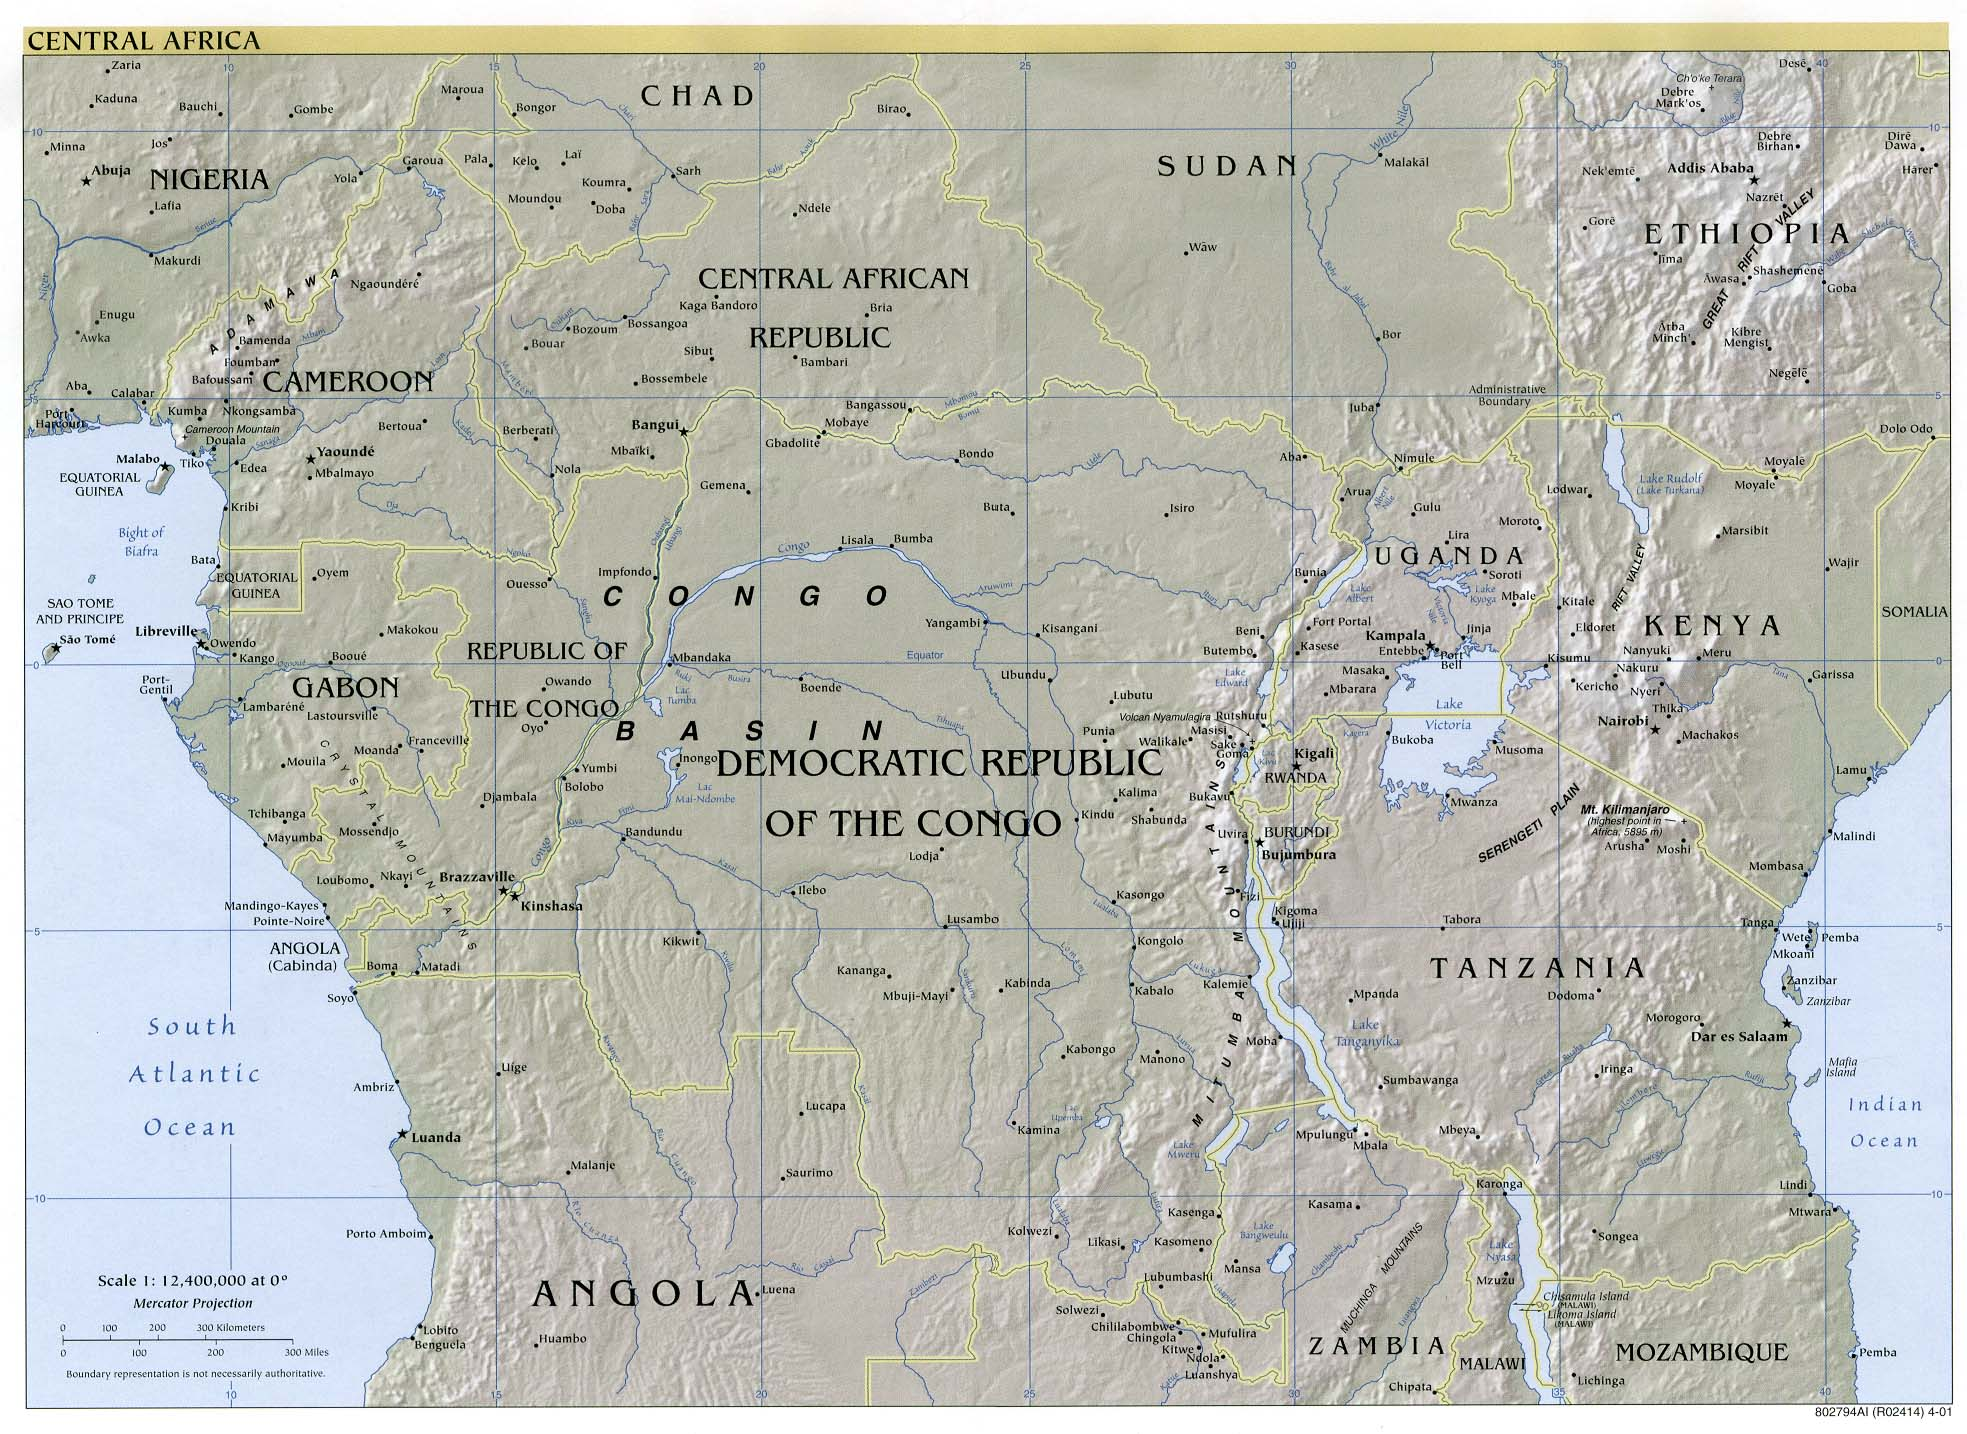 Africa Maps - Perry-Castañeda Map Collection - UT Library Online